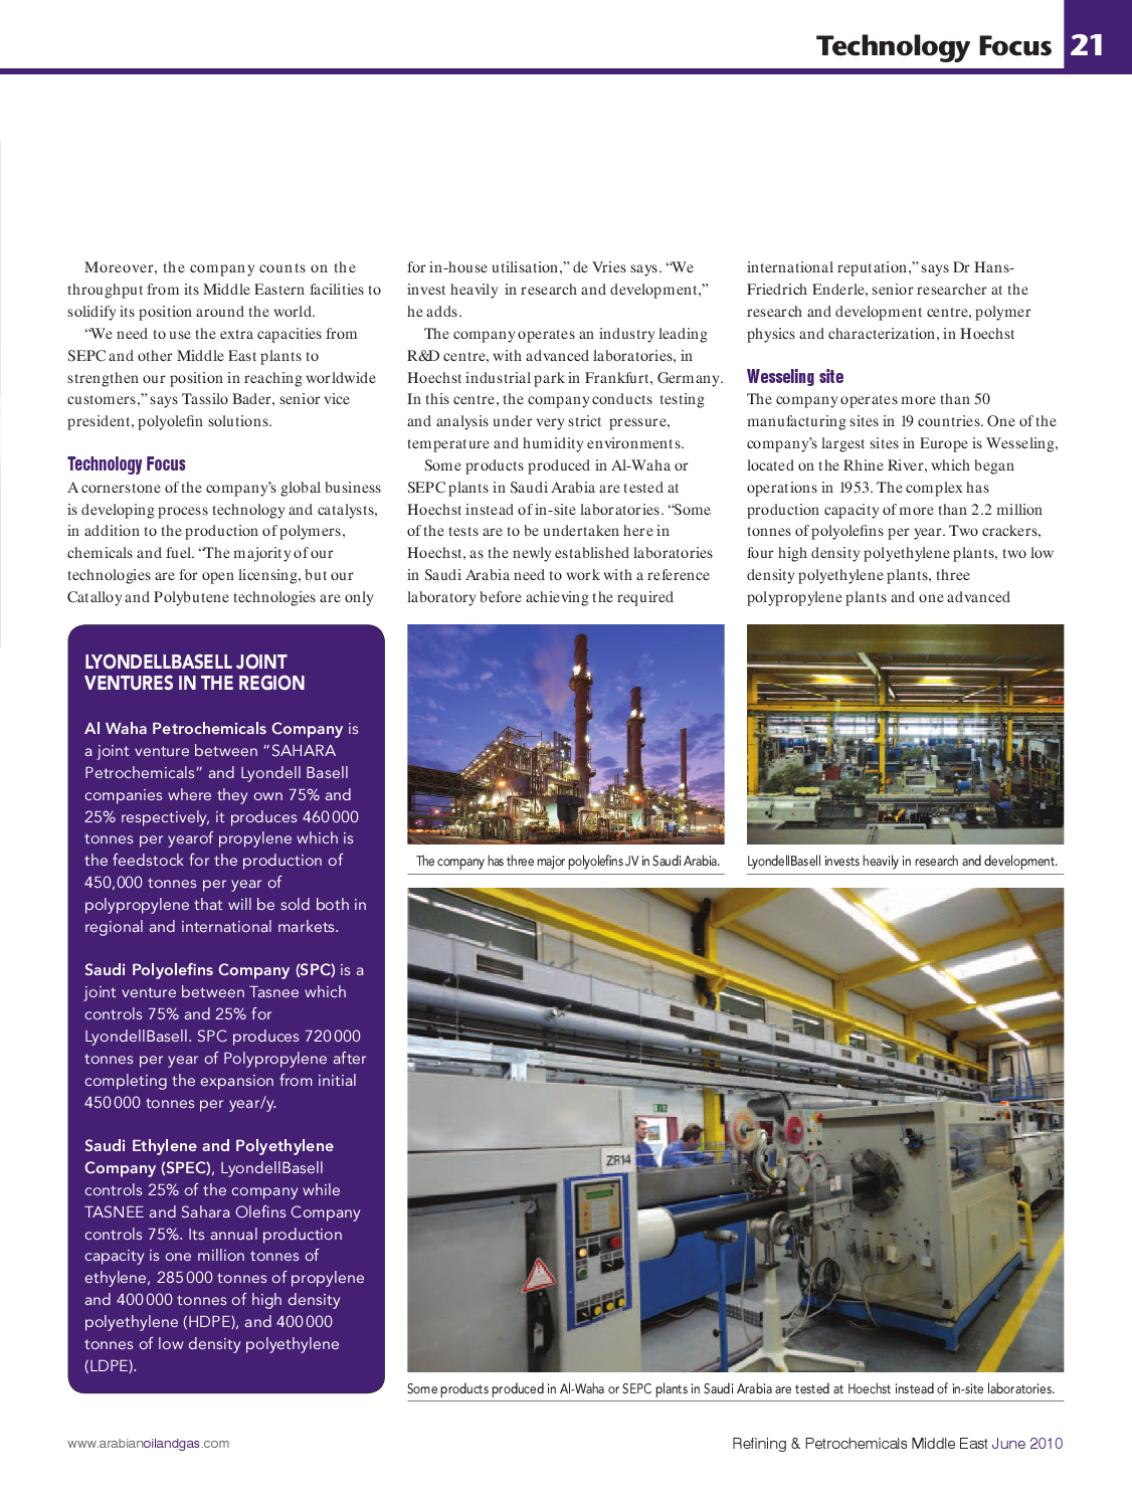 Refining & Petrochemicals Middle East - June 2010 by ITP